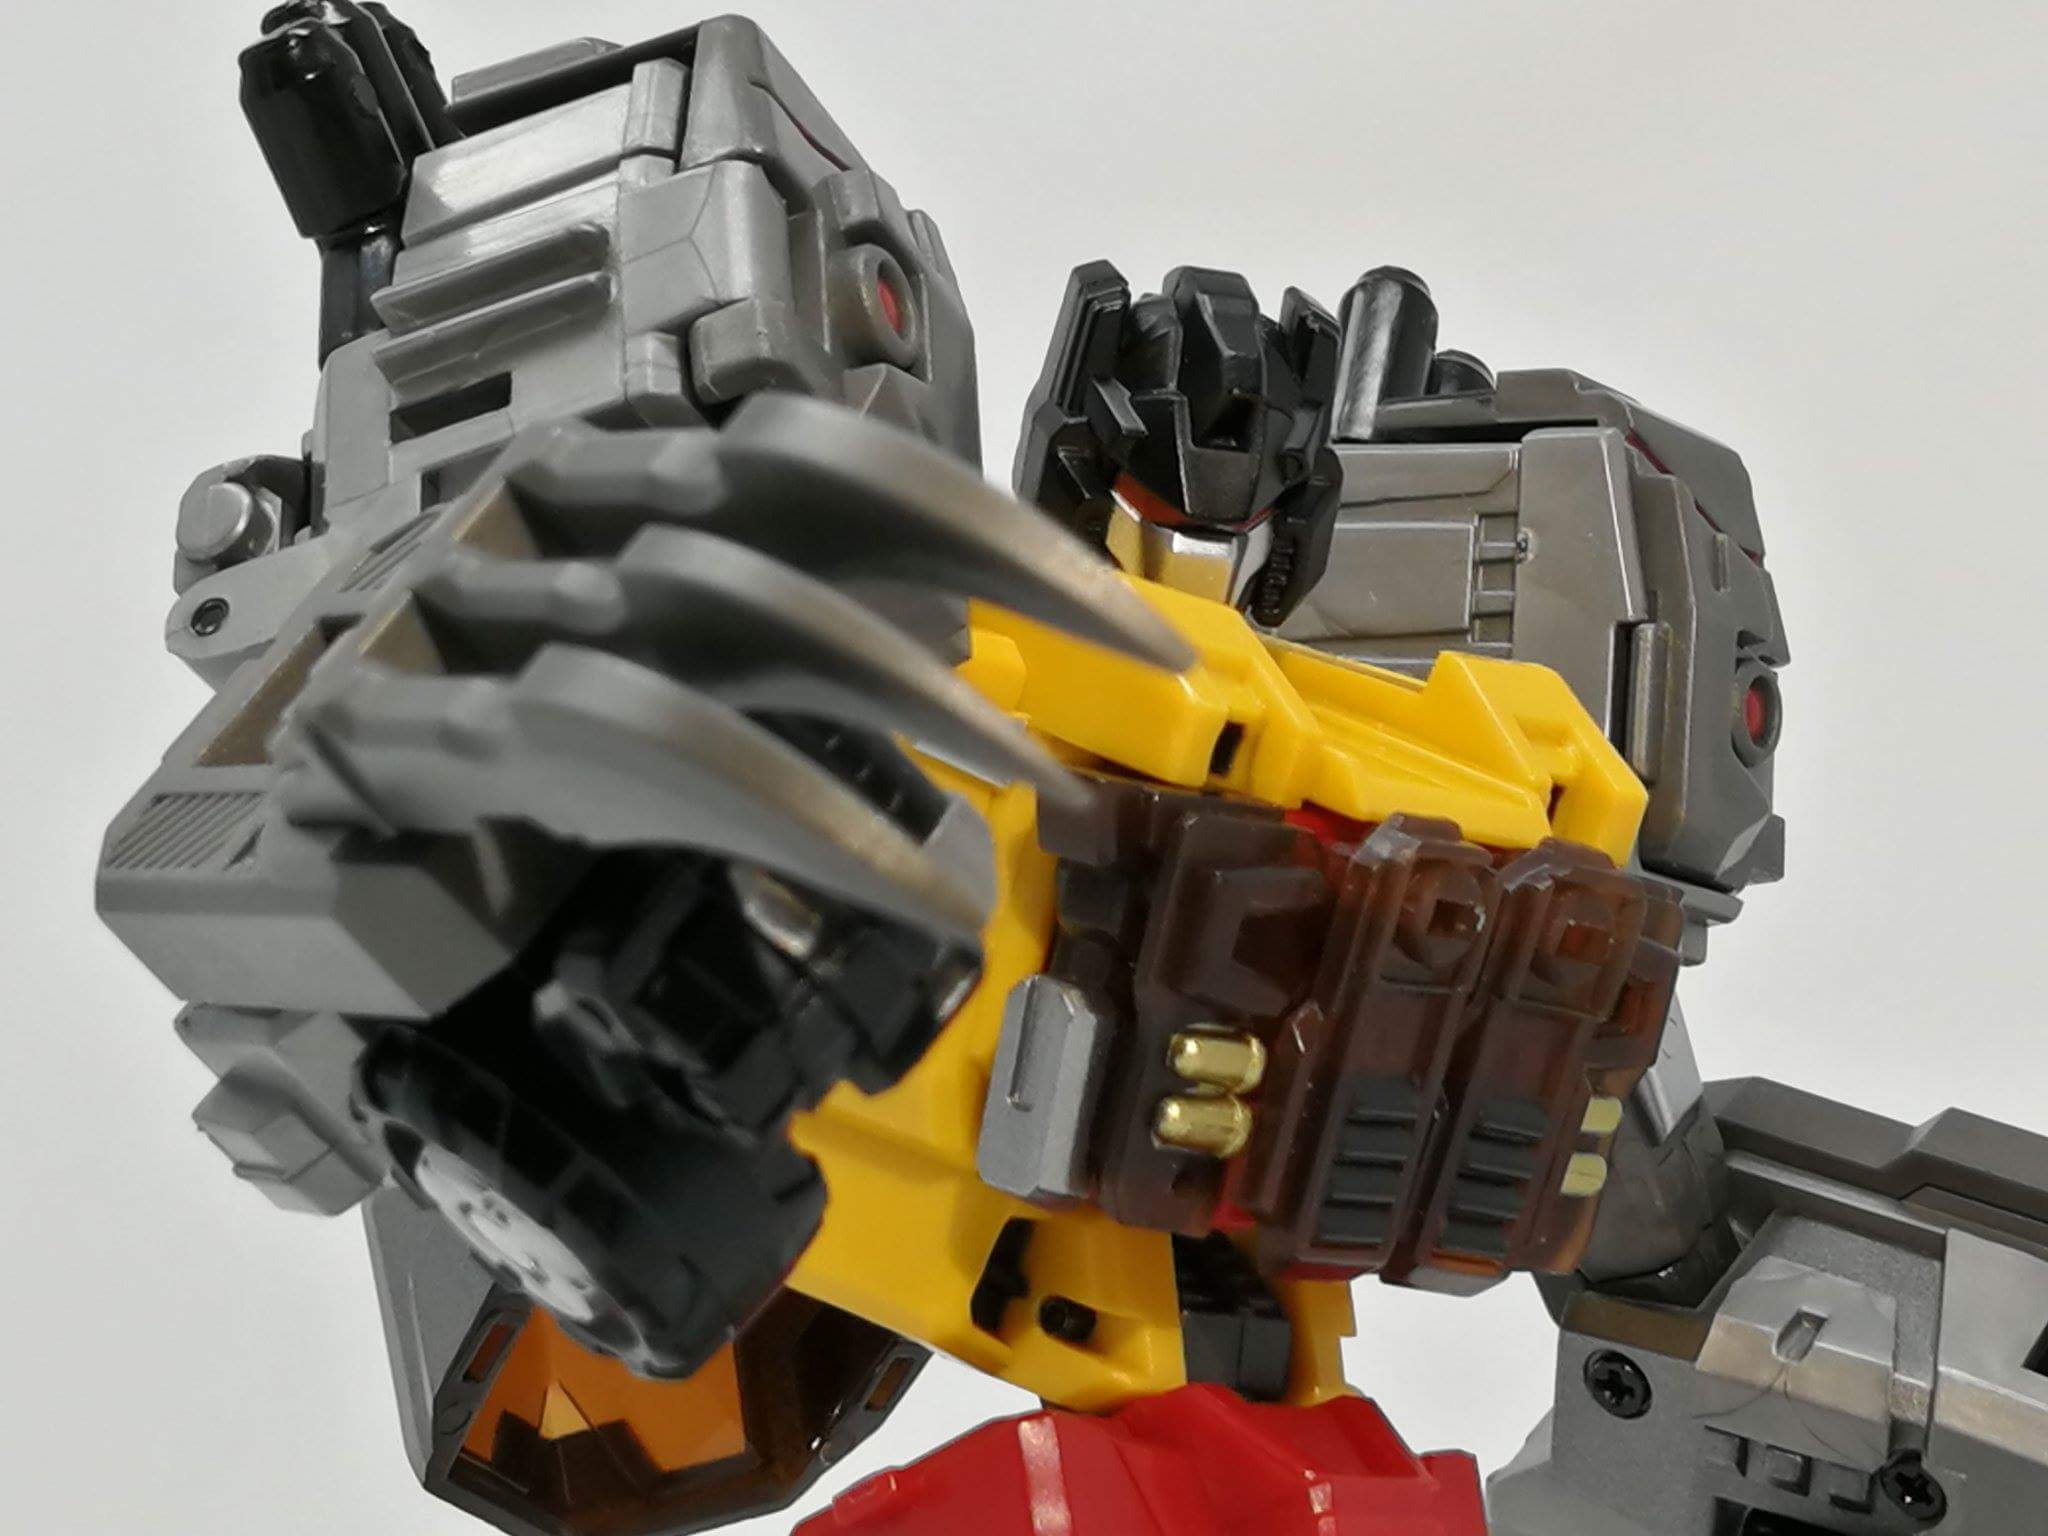 [FansProject] Produit Tiers - Jouets LER (Lost Exo Realm) - aka Dinobots - Page 3 FnfQhSL7_o